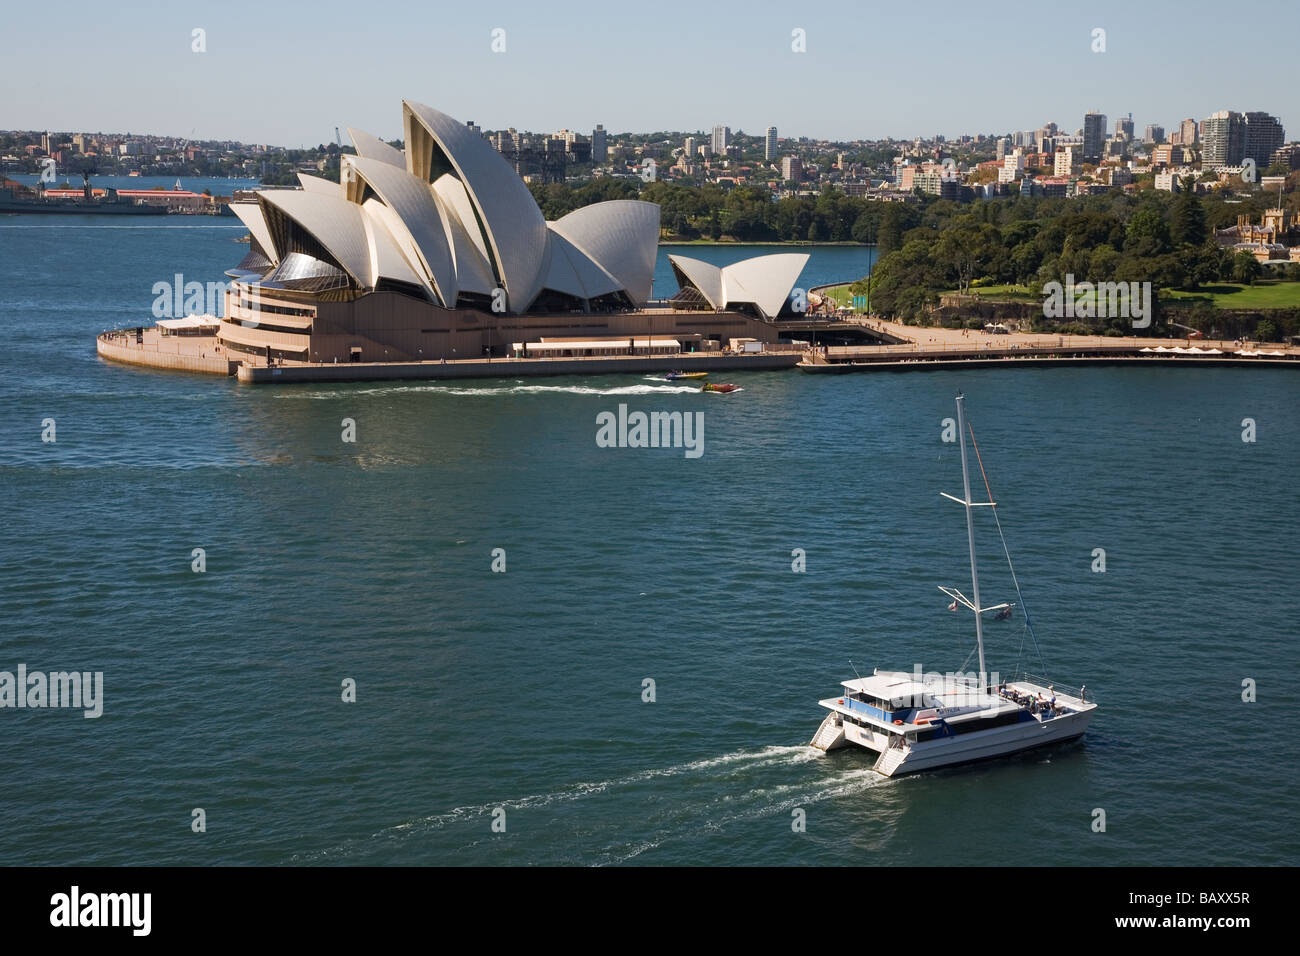 The Opera House designed by Jorn Utzon and built 1973 with tour boat arriving at Circular Quay Sydney New South - Stock Image